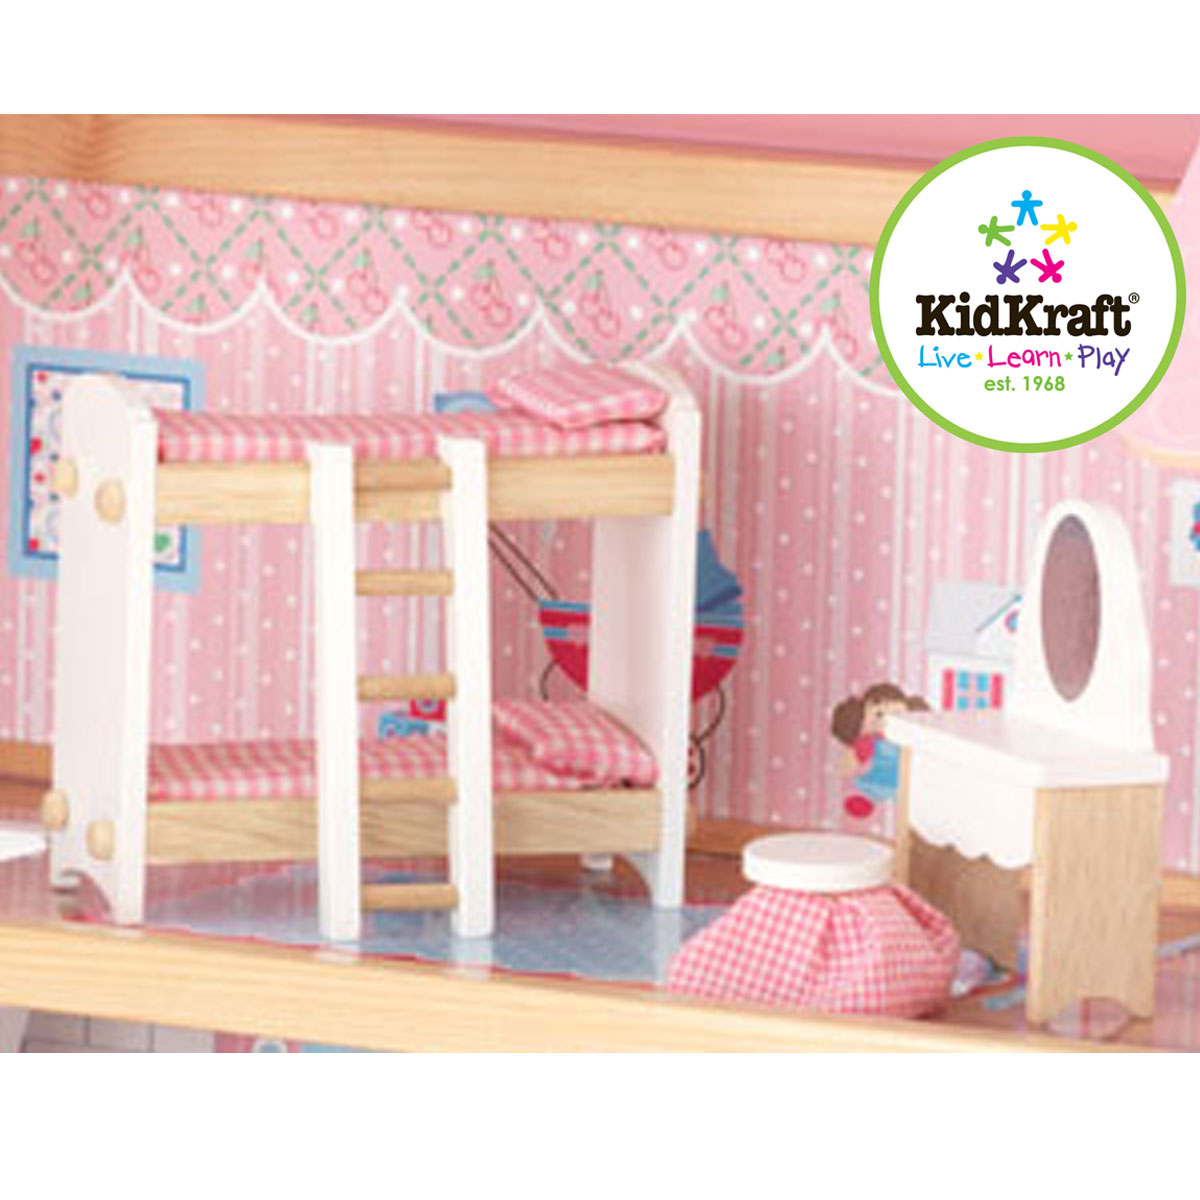 Kidkraft chelsea doll cottage kidkraft chelsea doll for Affordable furniture greece ny